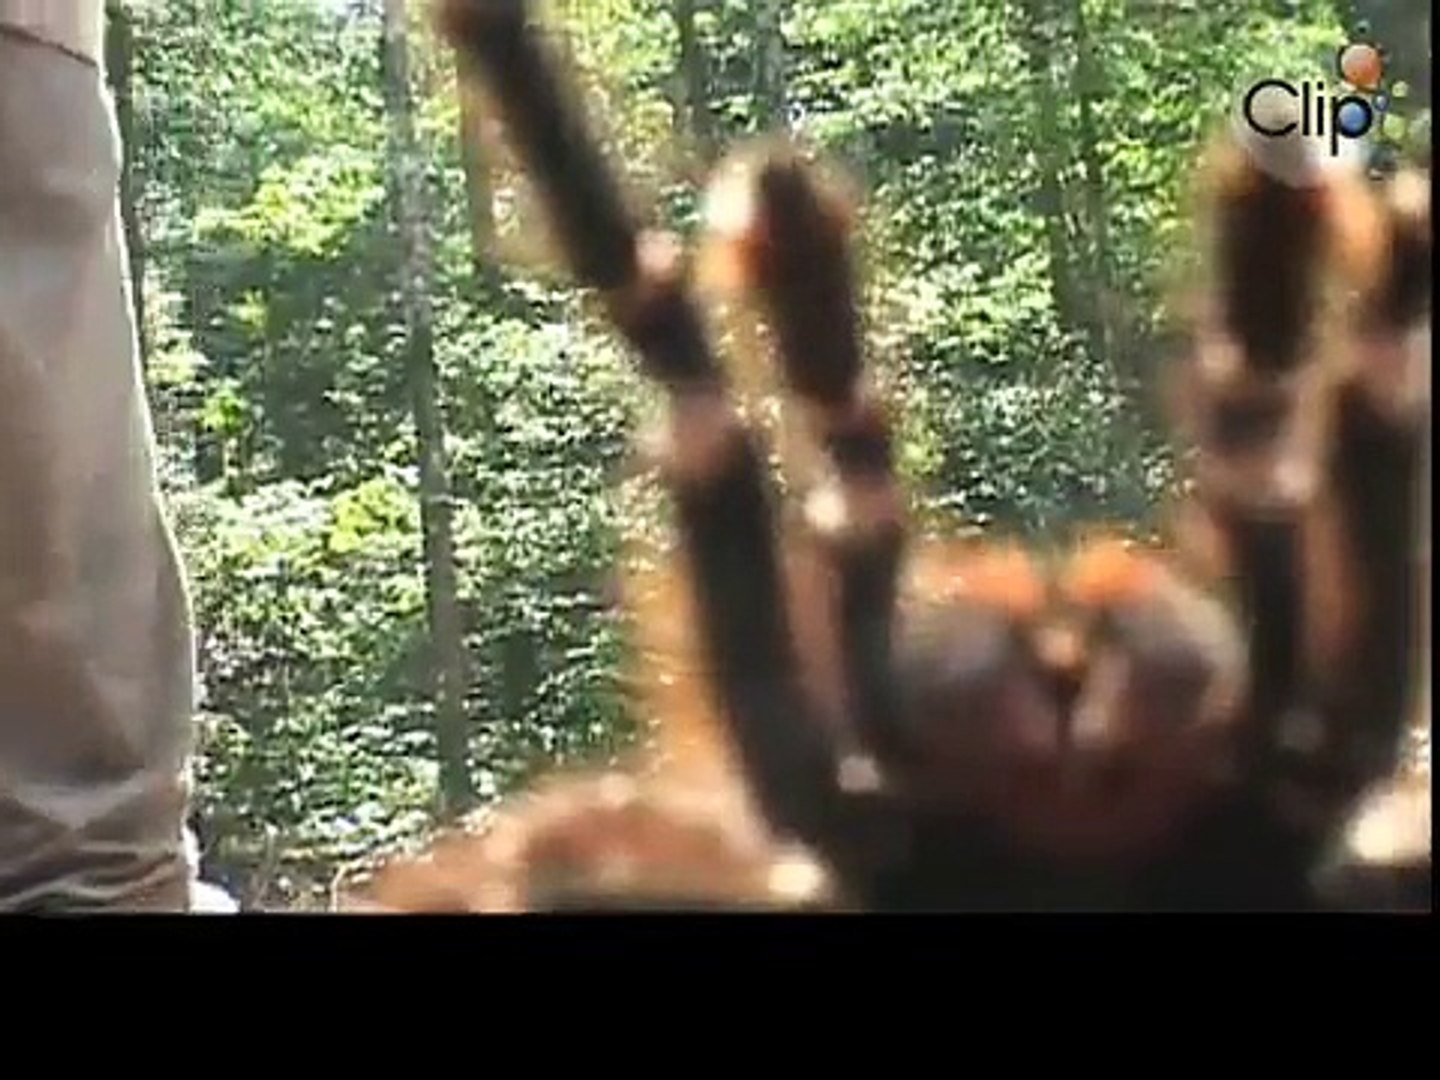 Amazon giant spiders attacking the camera, Funny 2015, Prank 2015, Funny Prank 2015, Video 2015